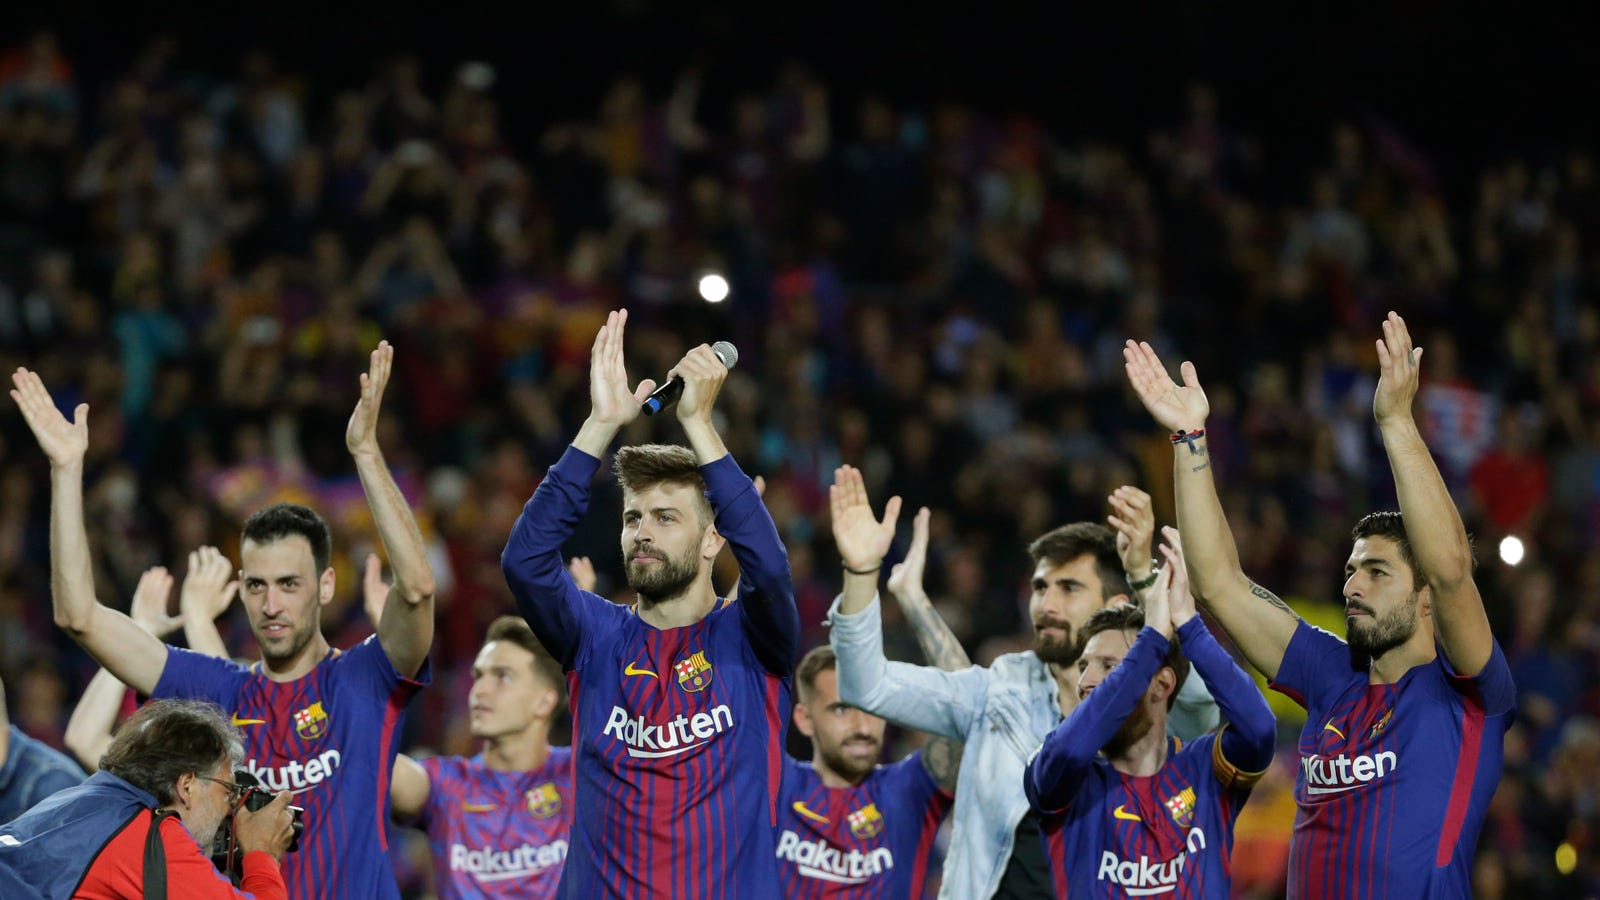 Popular Soccer App Spied on Fans Through Phone Microphone to